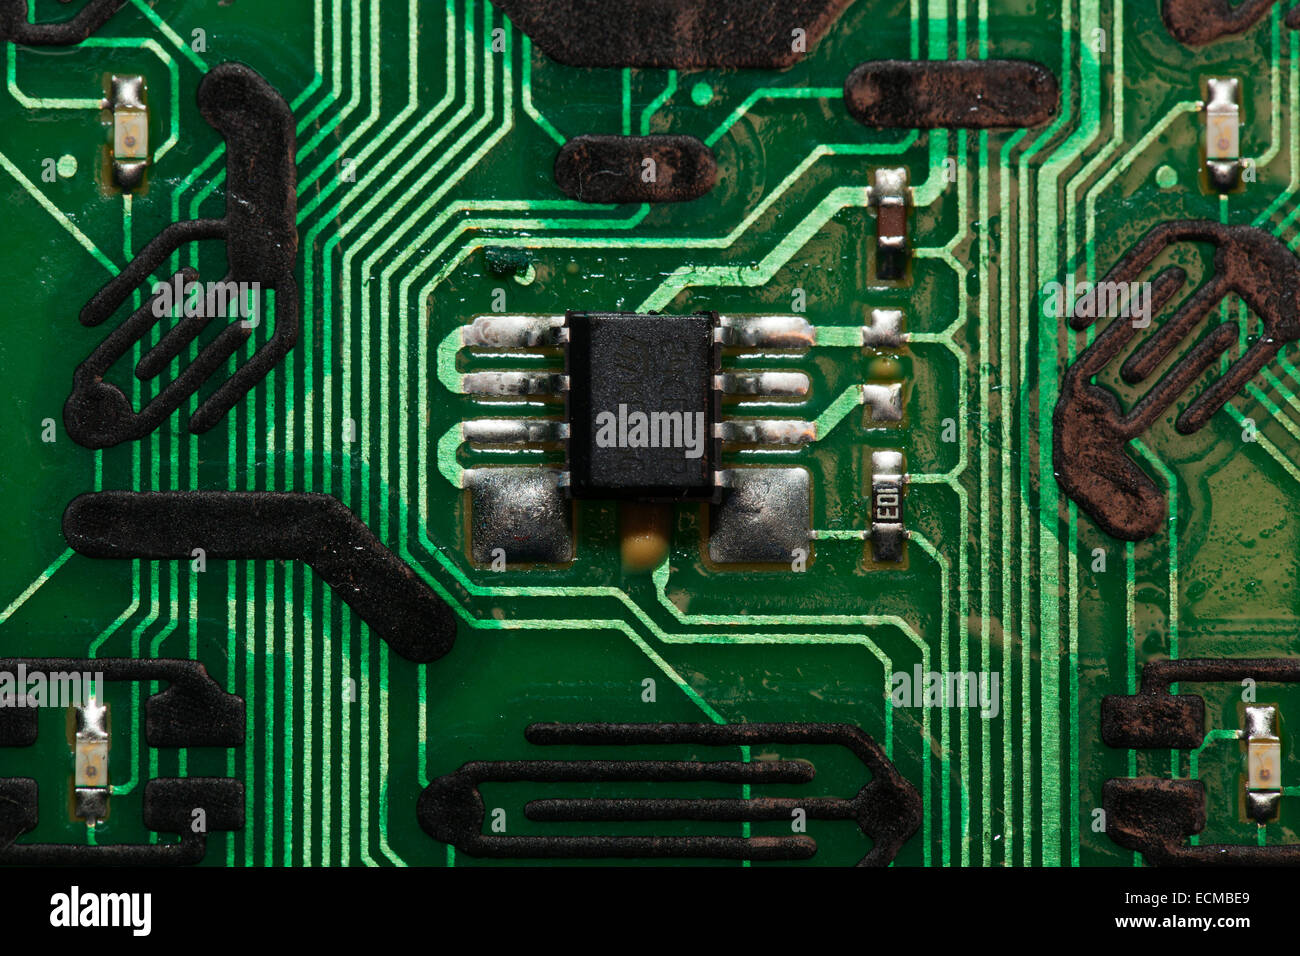 Microchip Connections of a Remote on a green PBC circuit board Stock ...